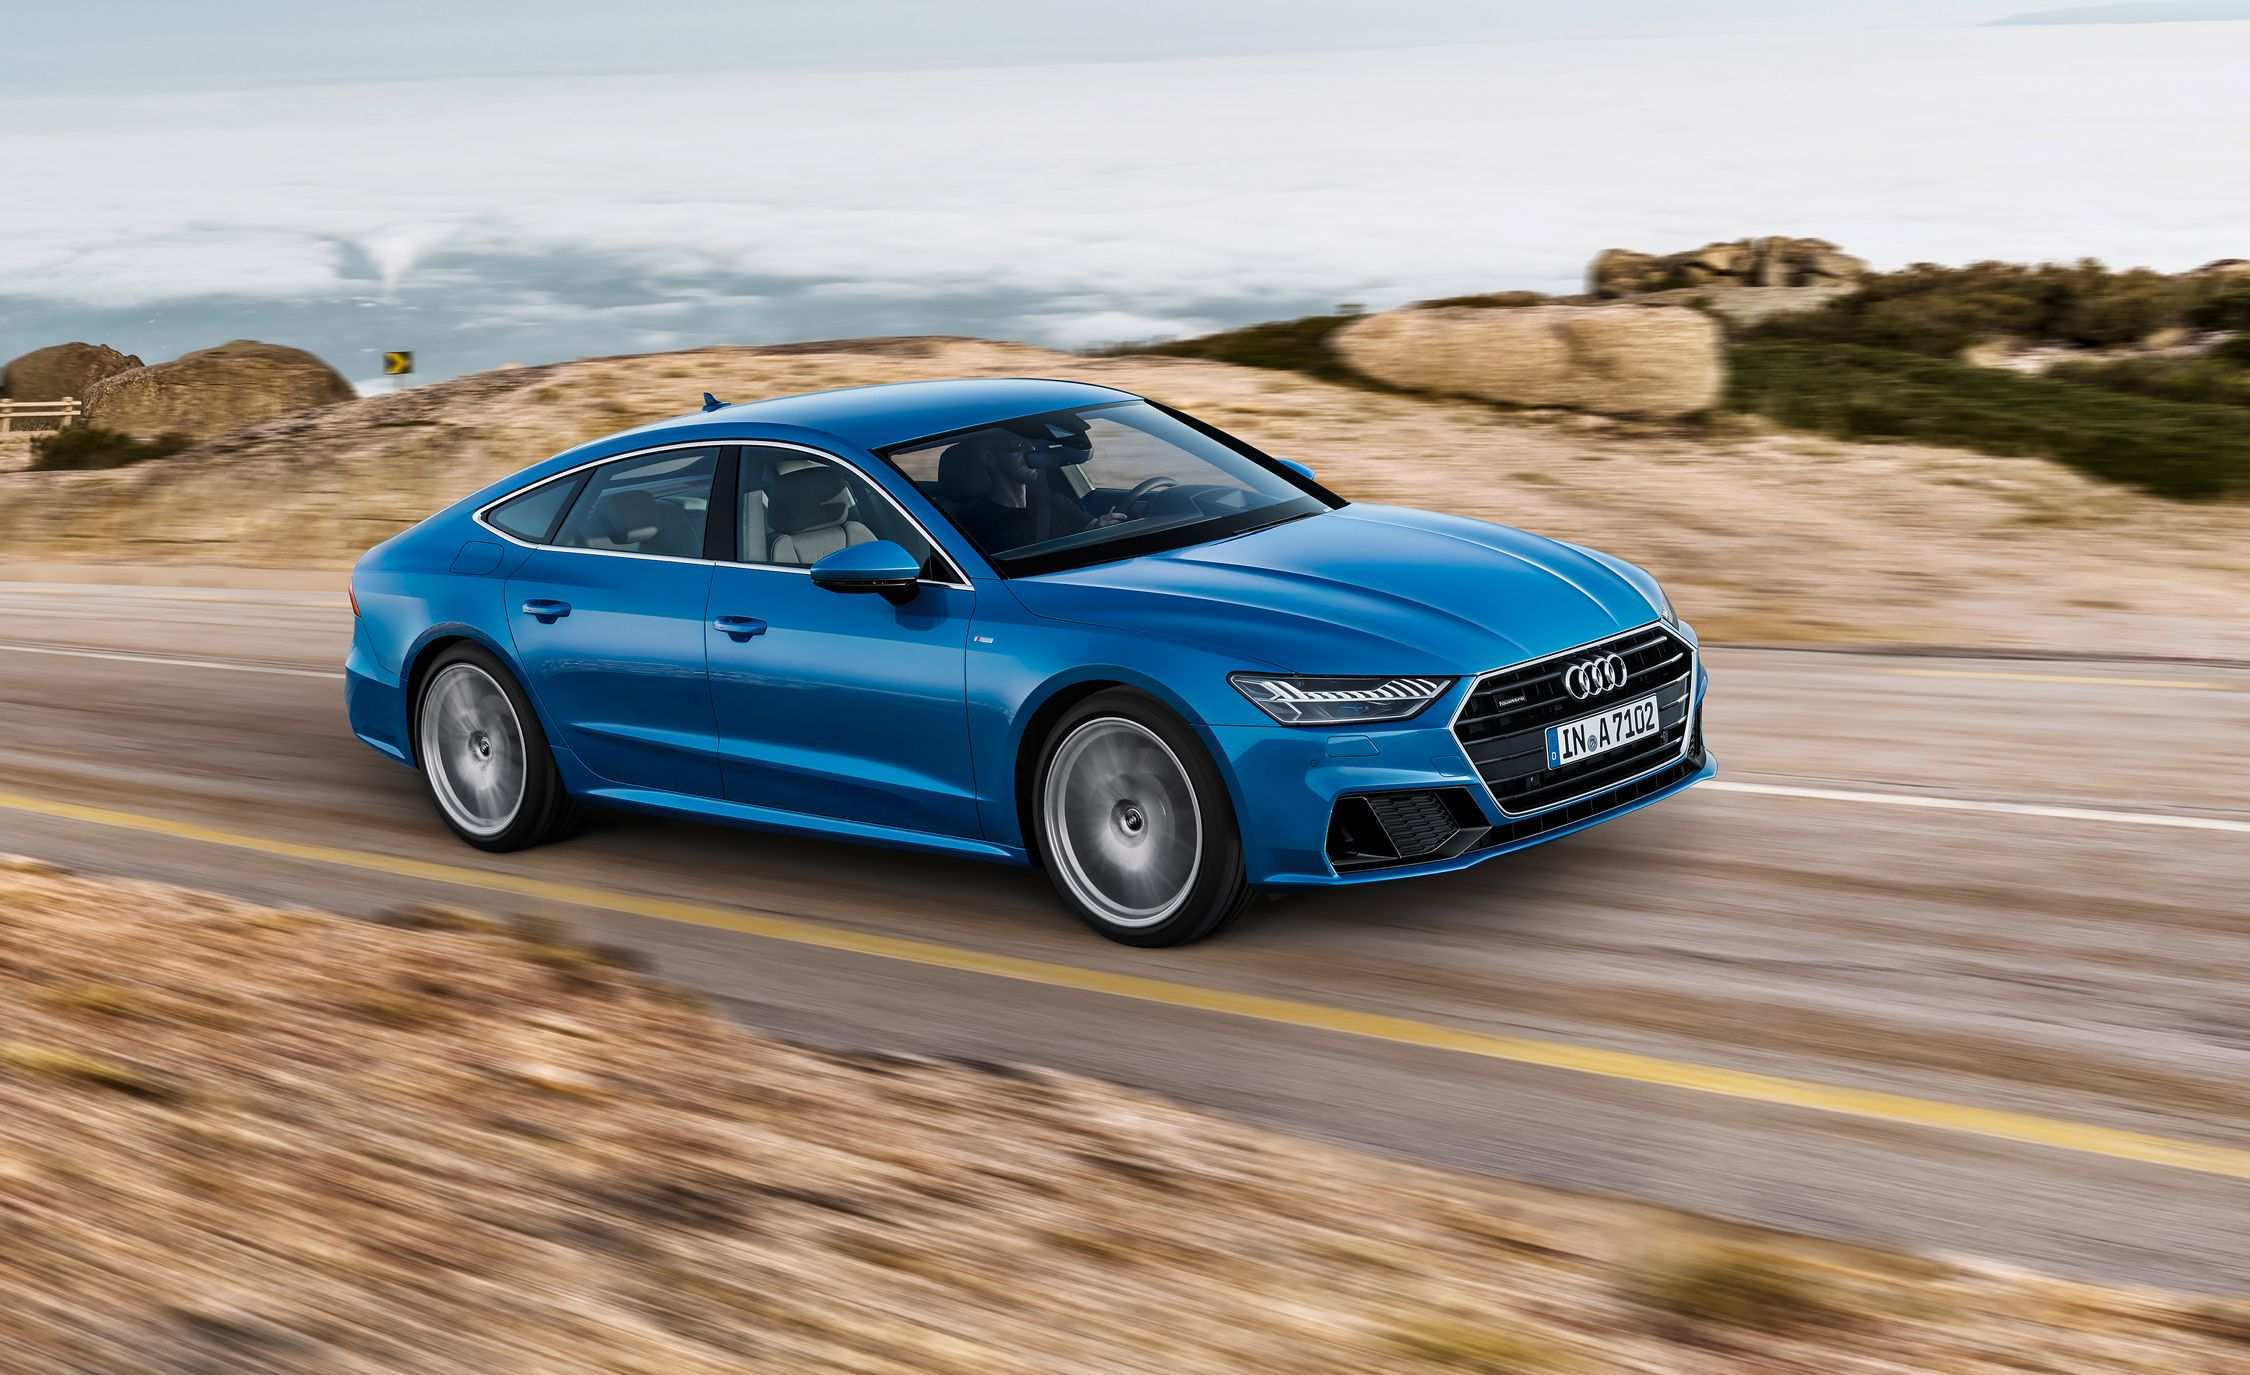 46 Best Review 2019 Audi A7 0 60 New Concept with 2019 Audi A7 0 60